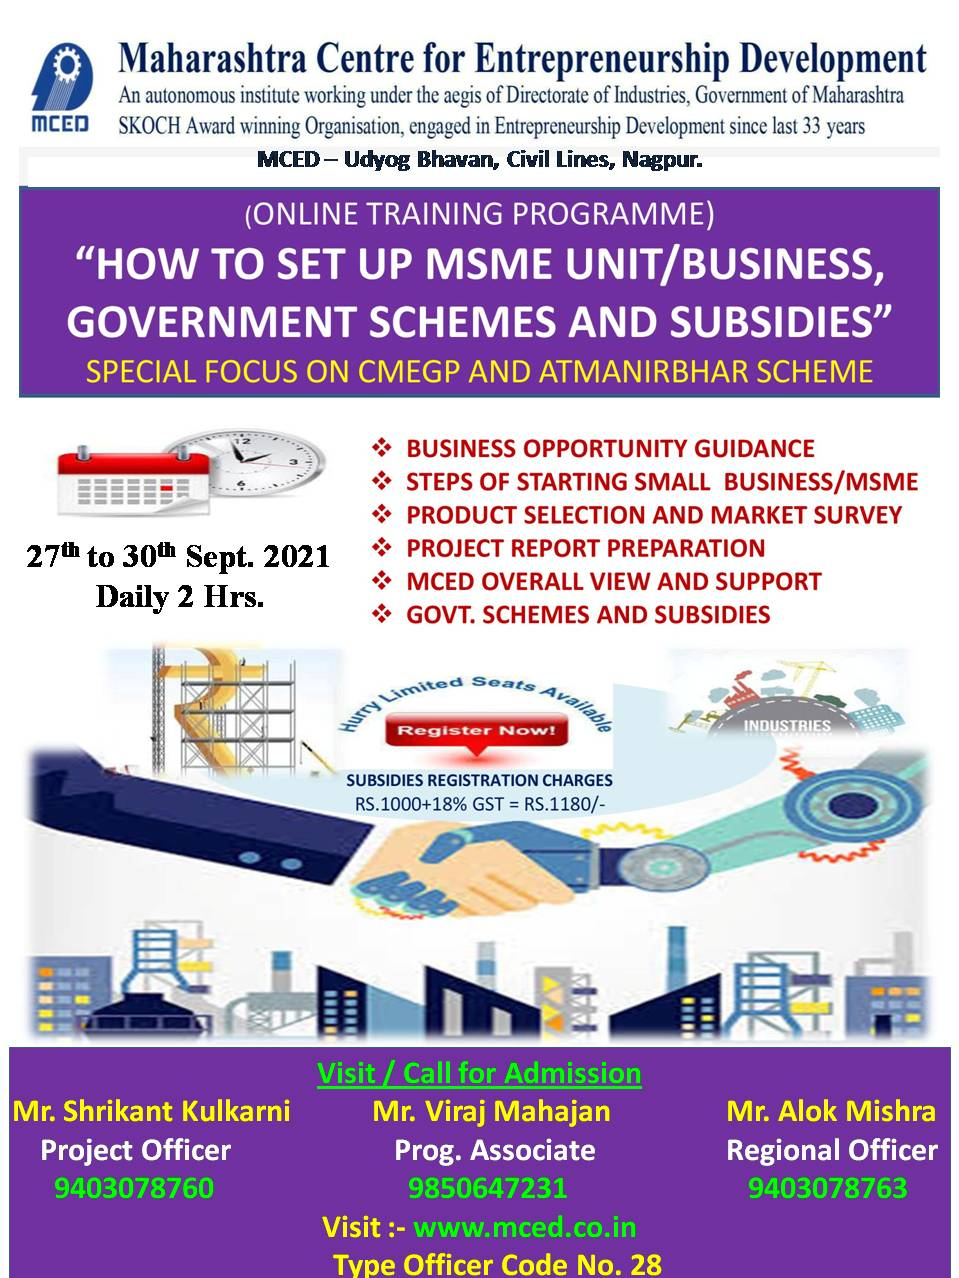 HOW TO SET UP MSME UNIT/BUSINESS, GOVT. SCHEMES AND SUBSIDIES - SPECIAL FOCUS ON ATMANIRBHAR BHARAT